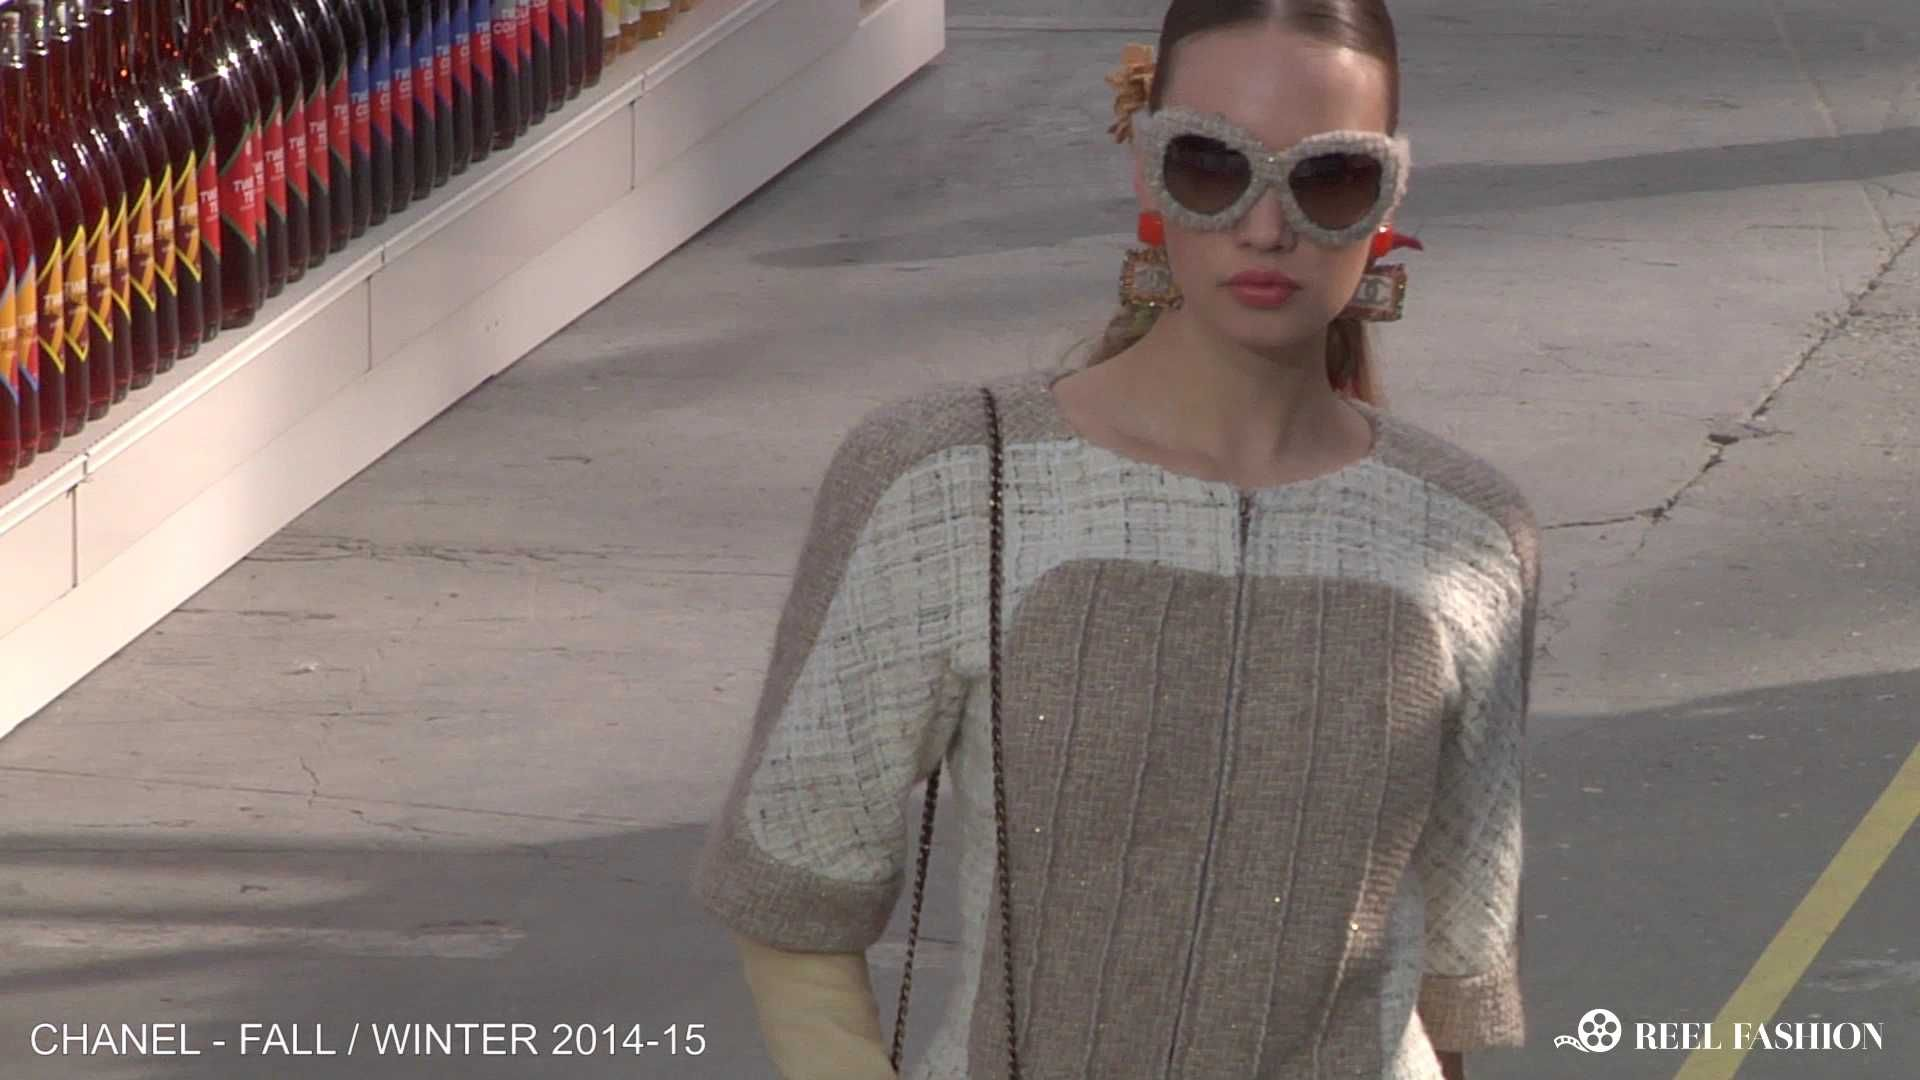 The sunglasses | Accessories from the Runway | Chanel Fall/Winter 2014-15 | Paris Fashion Week | Full show video available on ReelFashion.TV